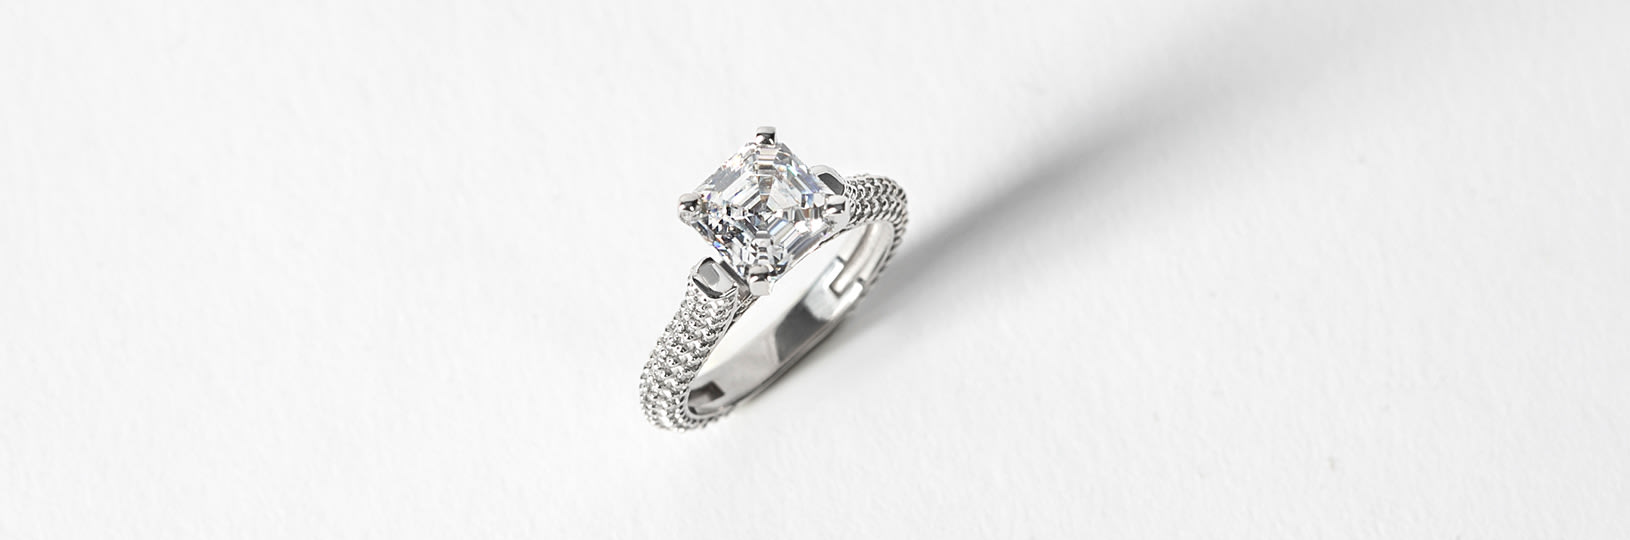 A sliver engagement ring in an accented setting